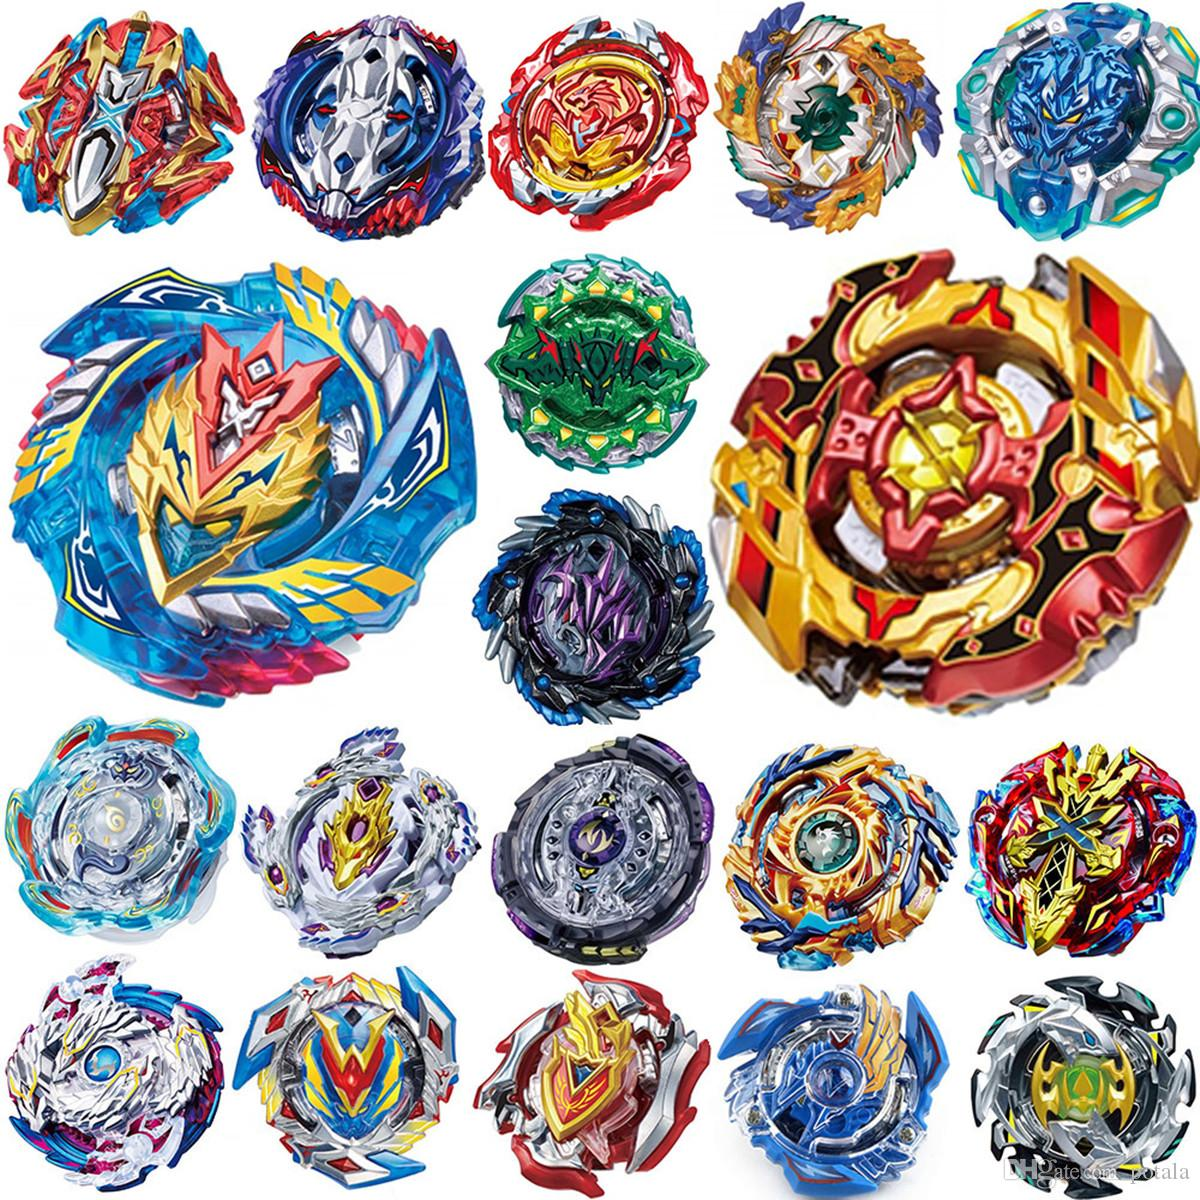 30 Patterns Beyblade WITH Launchers Burst Toys Arena 4D Bey blades Toupie 2019 Bayblade Metal Fusion Battles Constellation Spinner boys fun